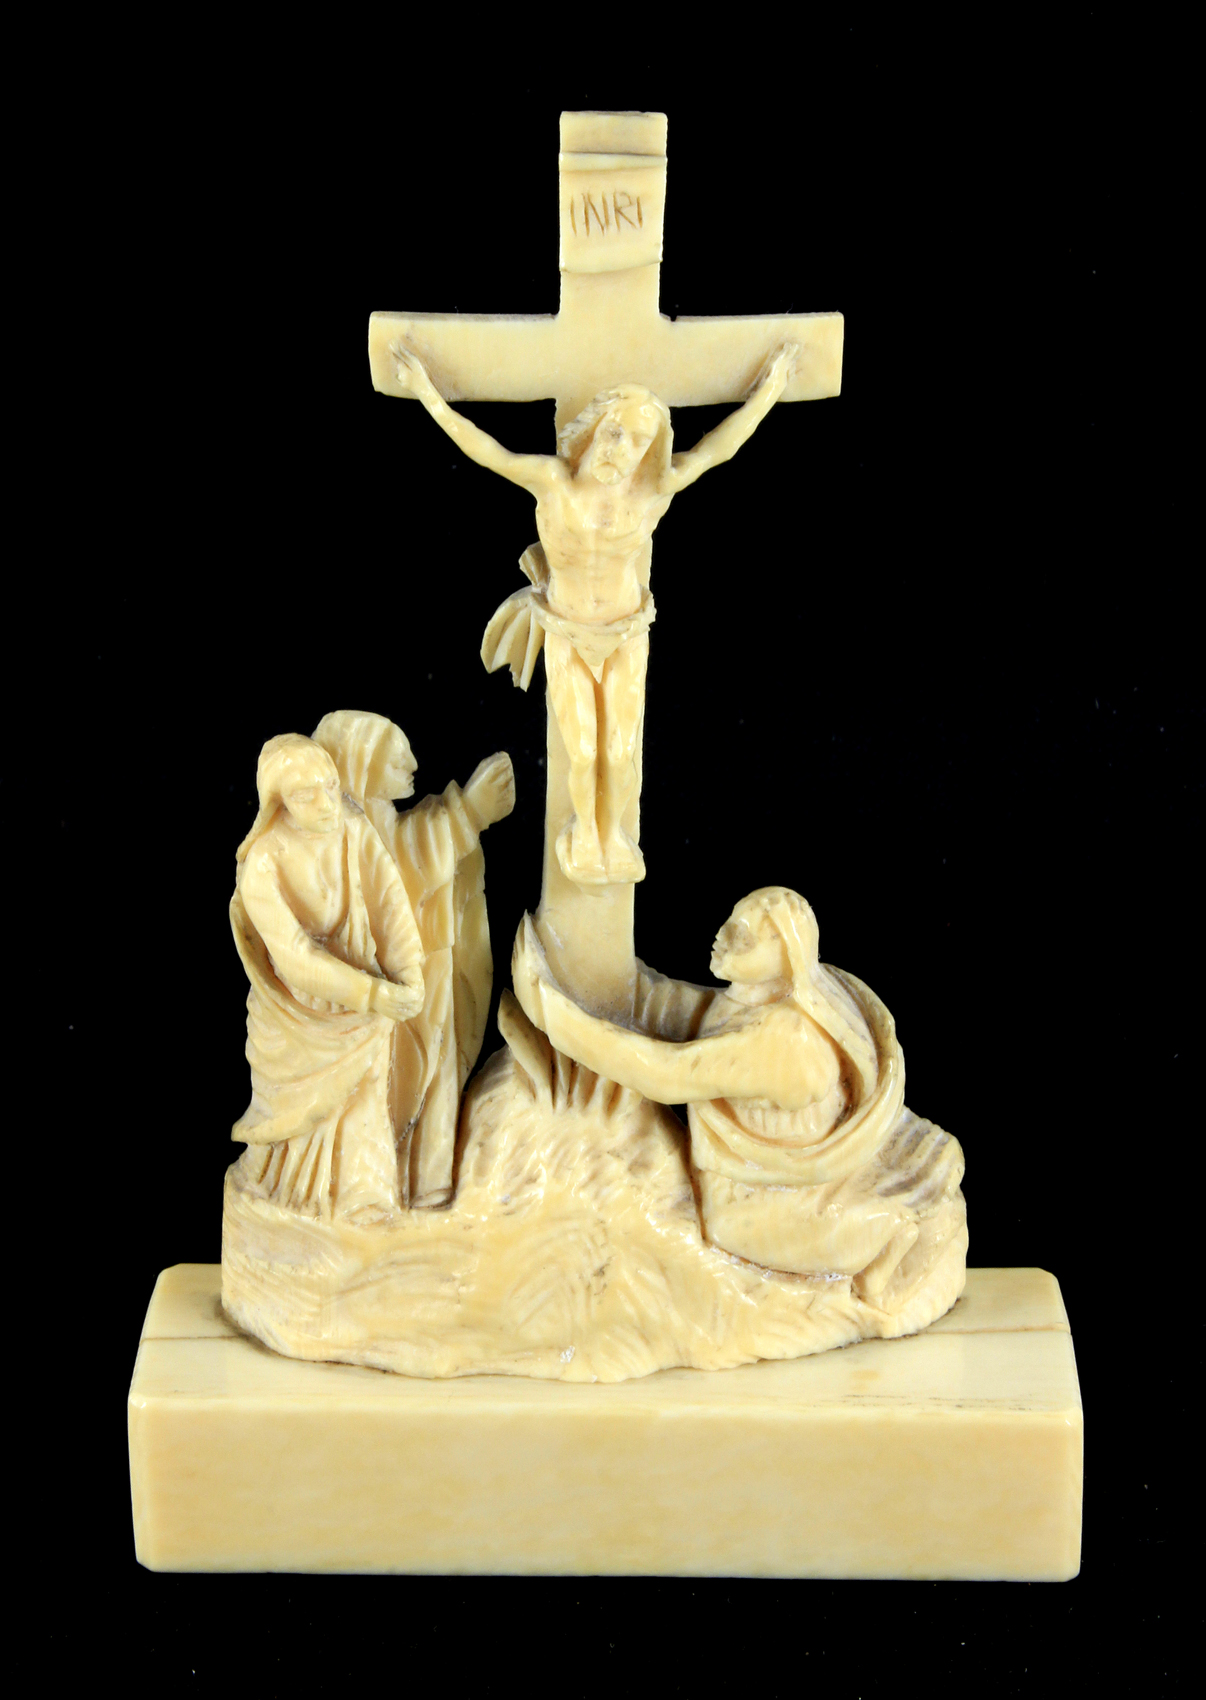 Lot 350 - 18th century European school. Calvary scene in carved ivory